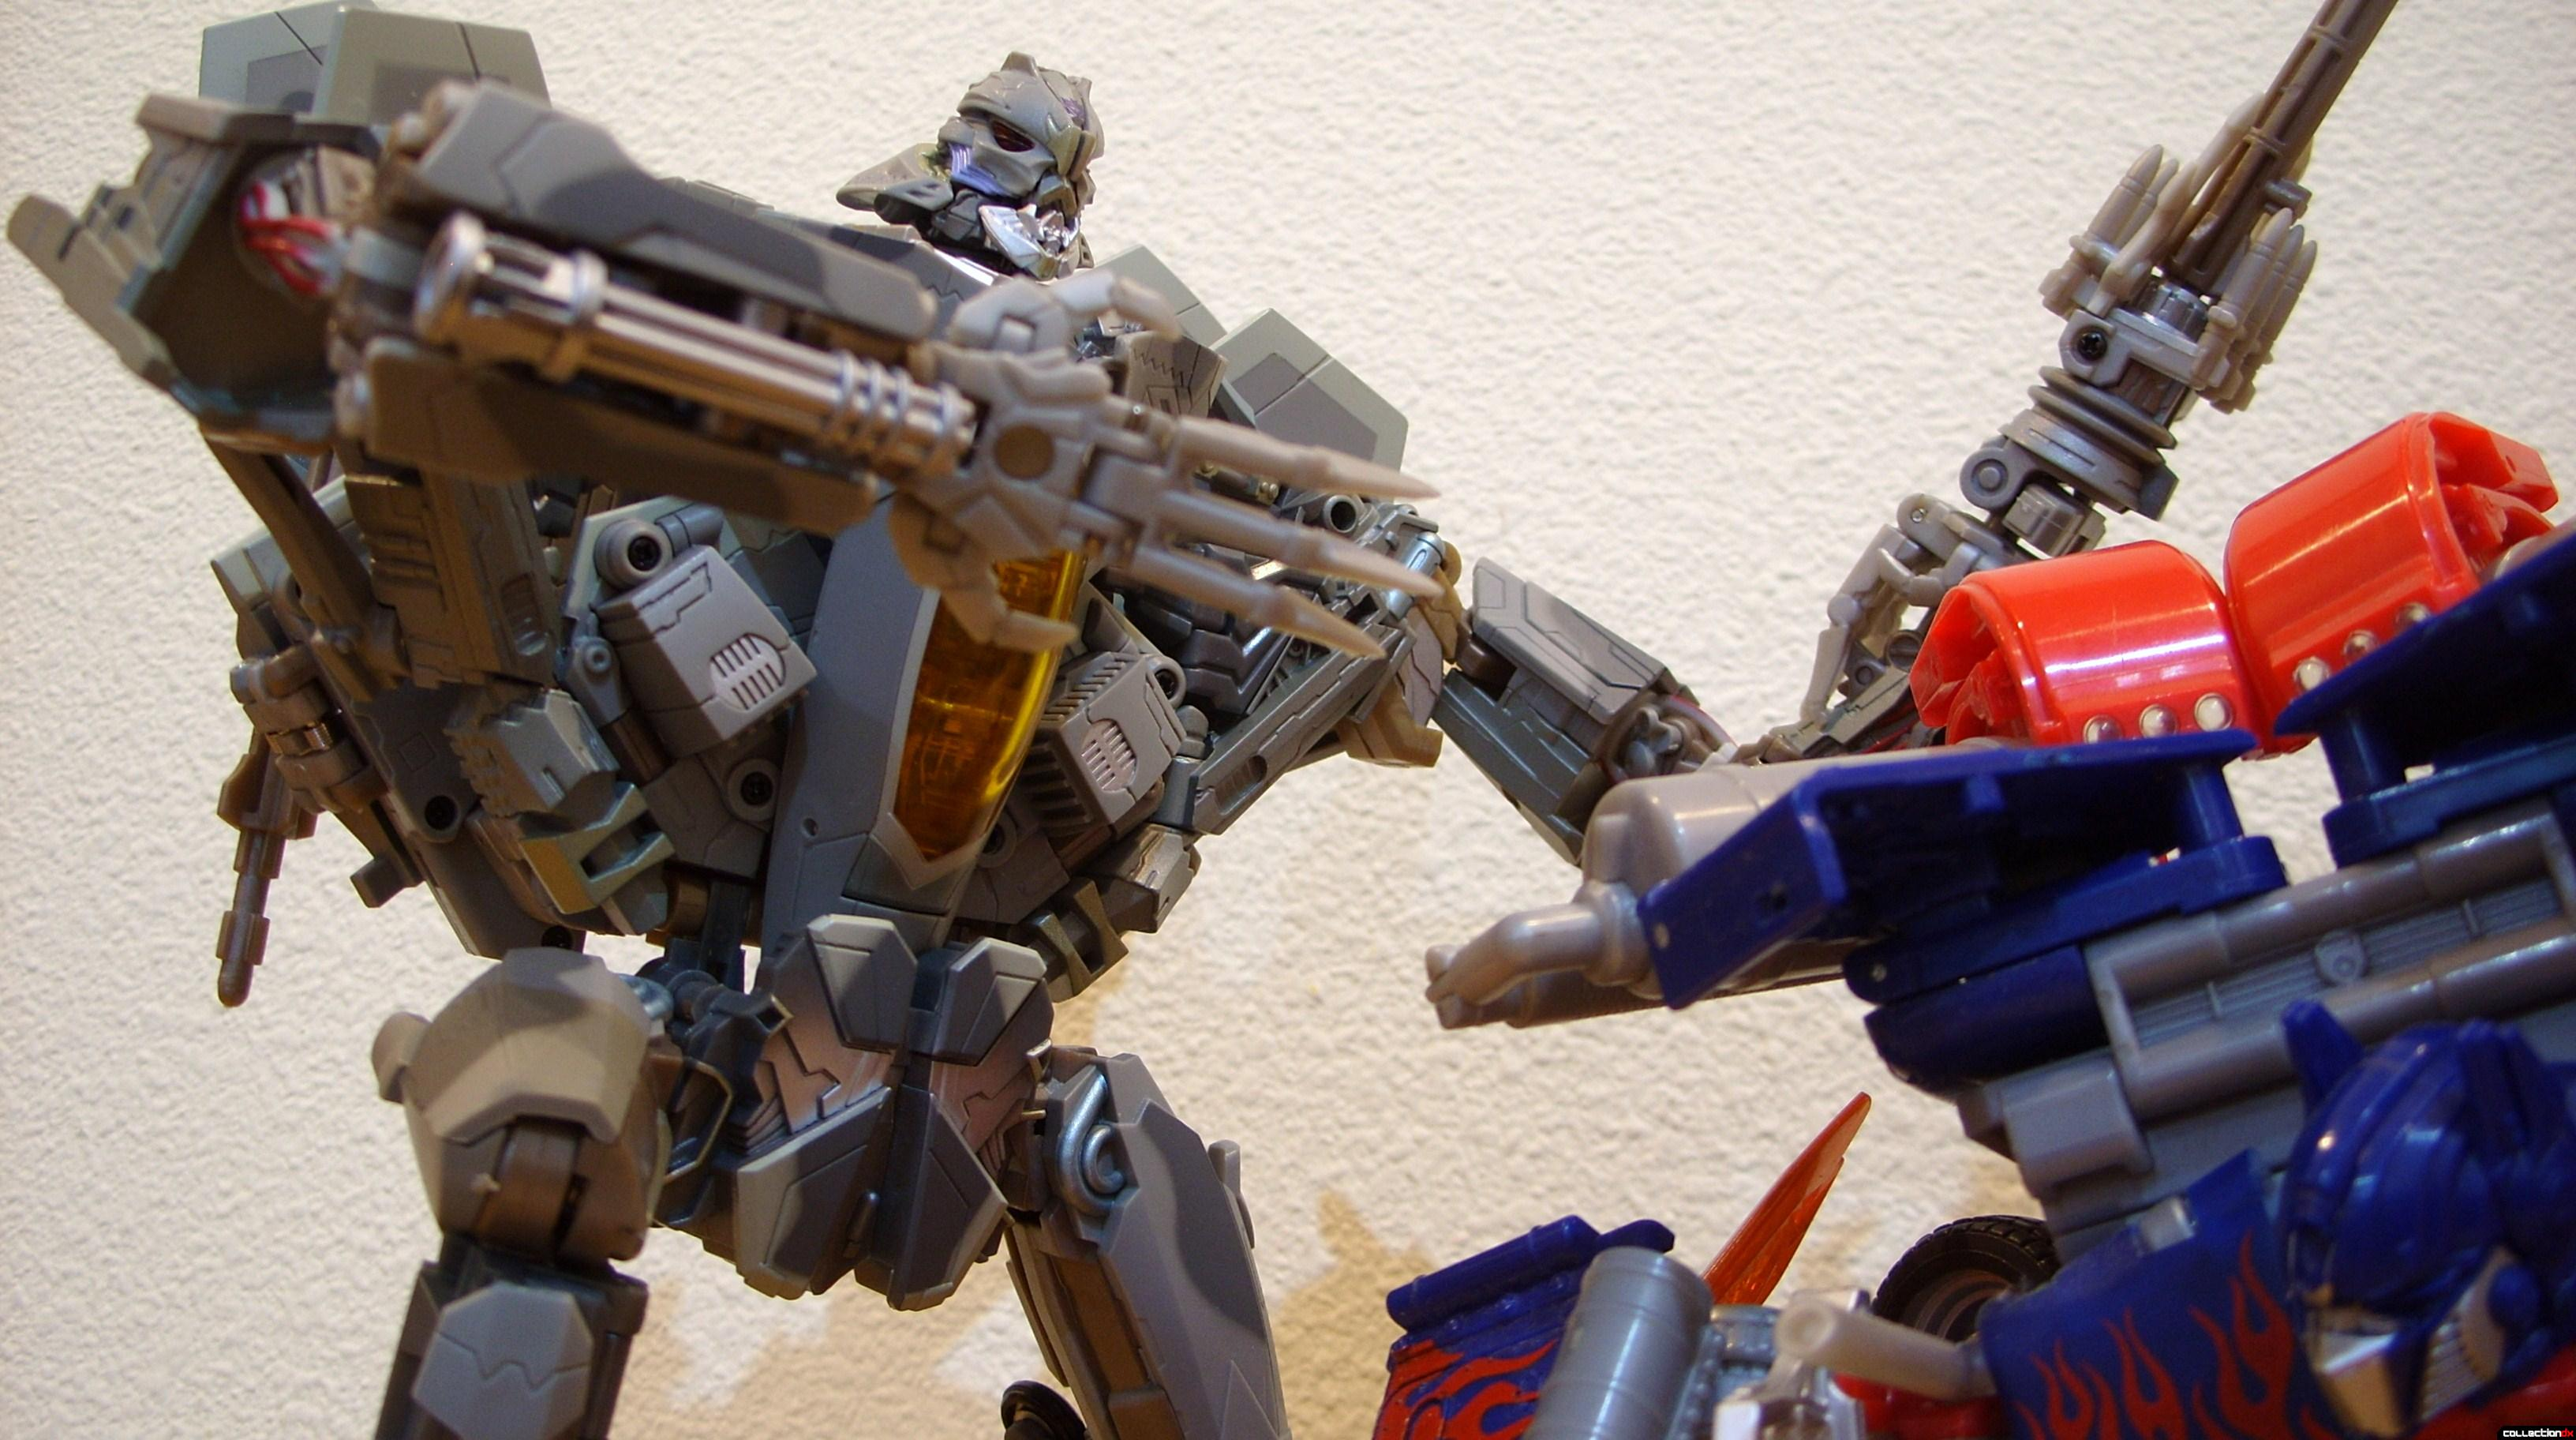 Masterpeice Movie Series Starscream- Robot Mode (L) posed with Leader-class Optimus Prime (R)